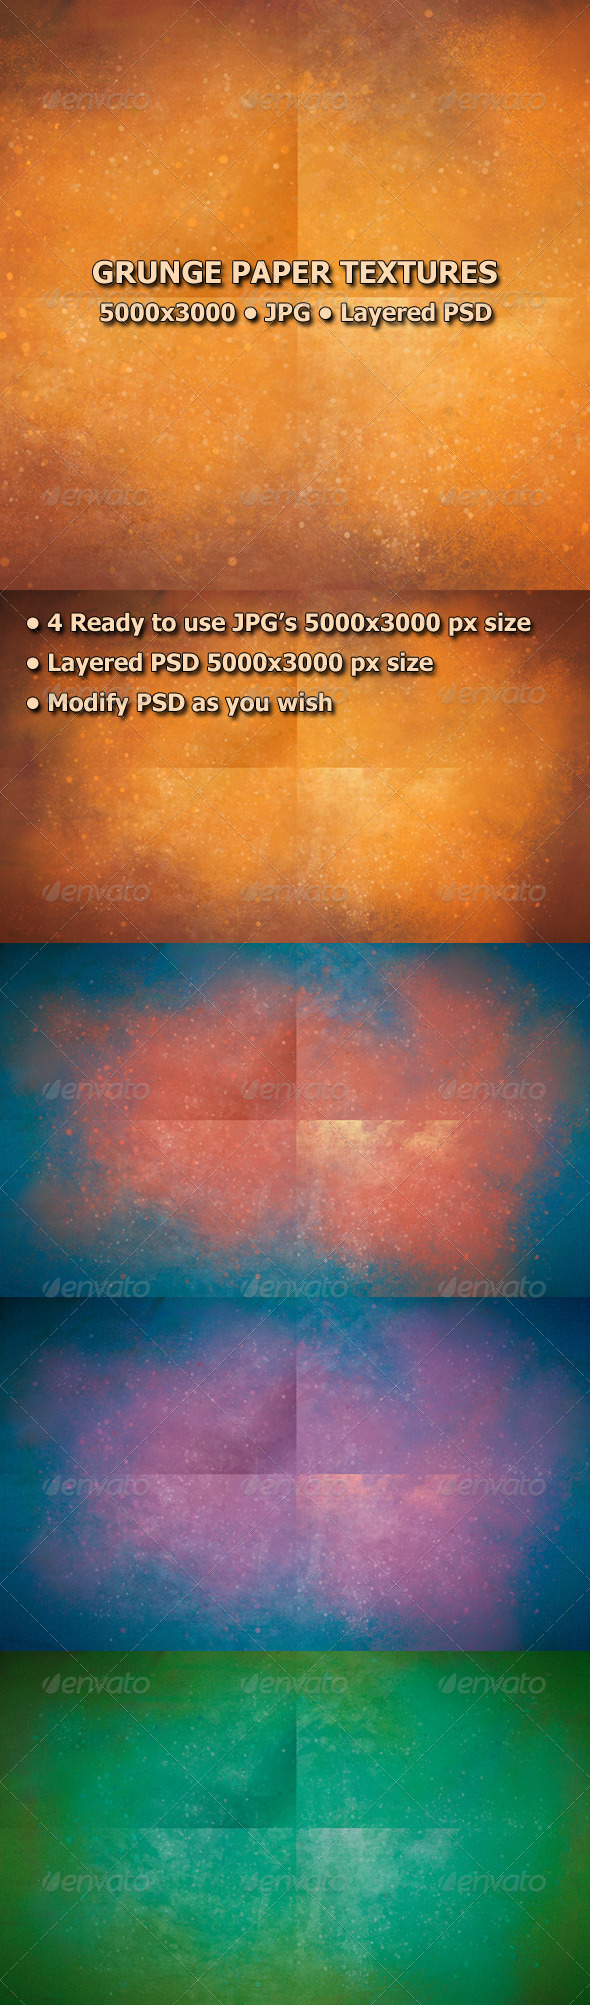 GraphicRiver Grunge Paper Textures 7668863